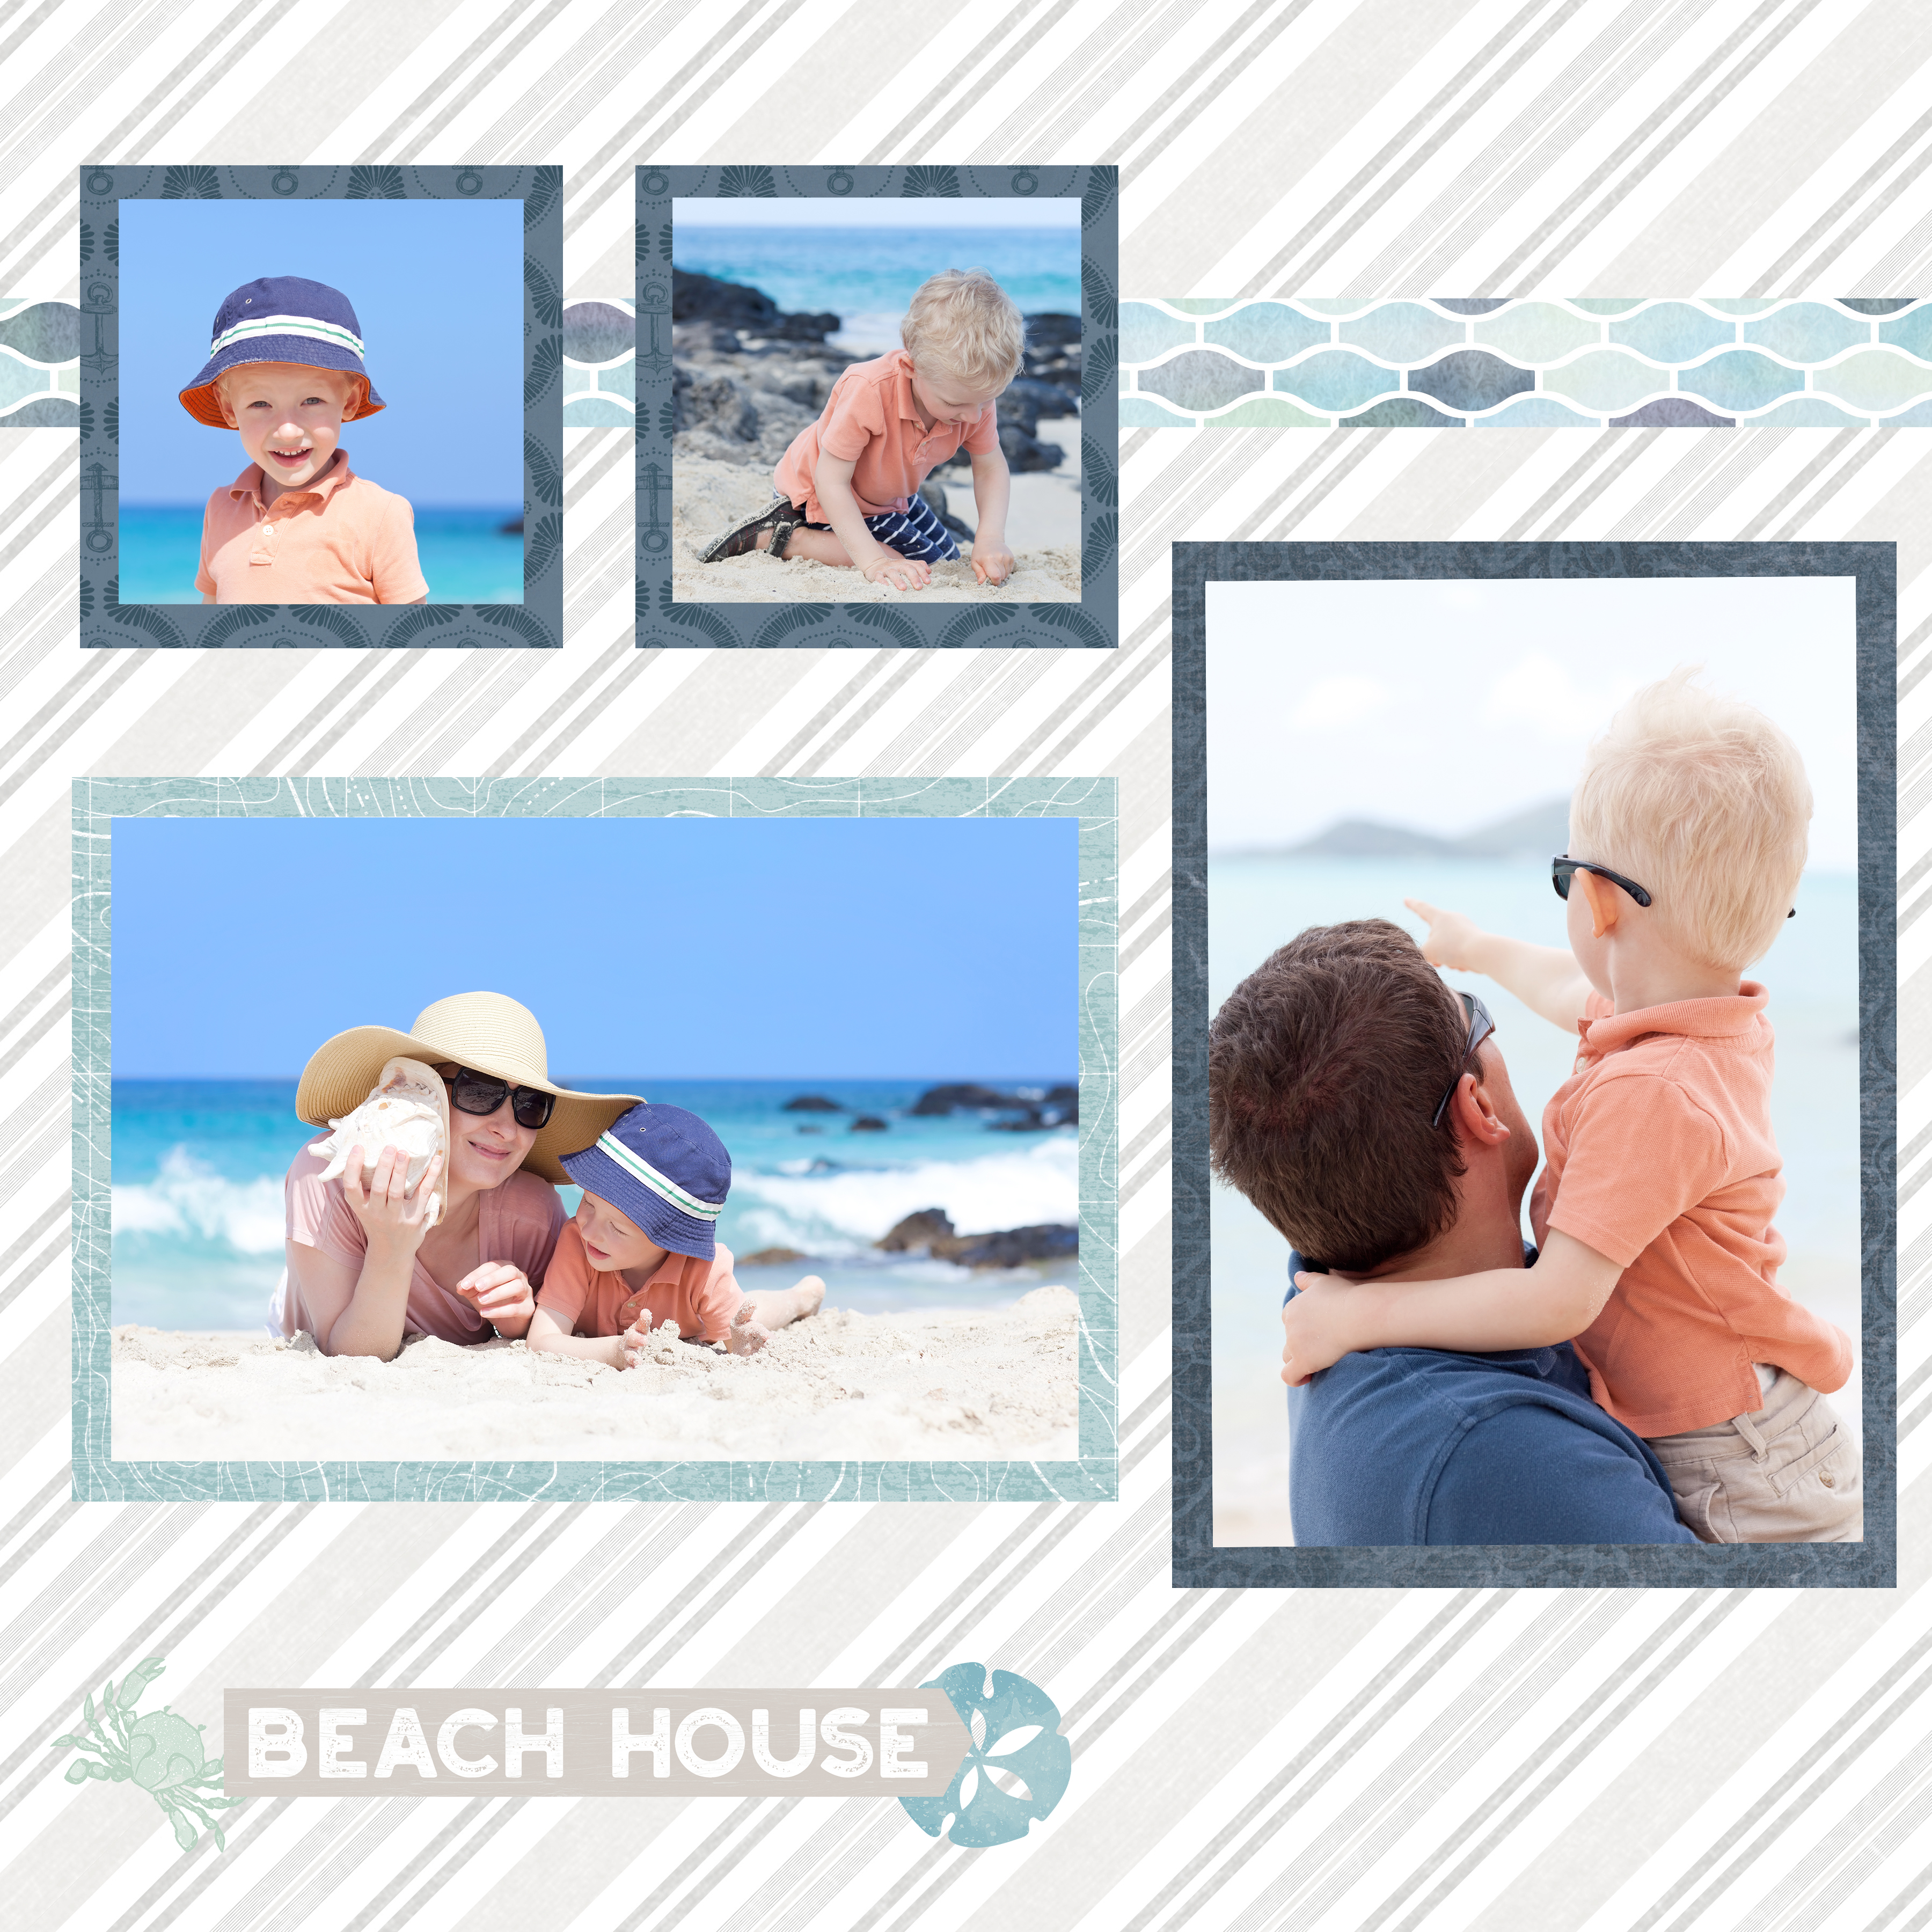 Creative Memories Digital Artwork is for your private and personal use only.